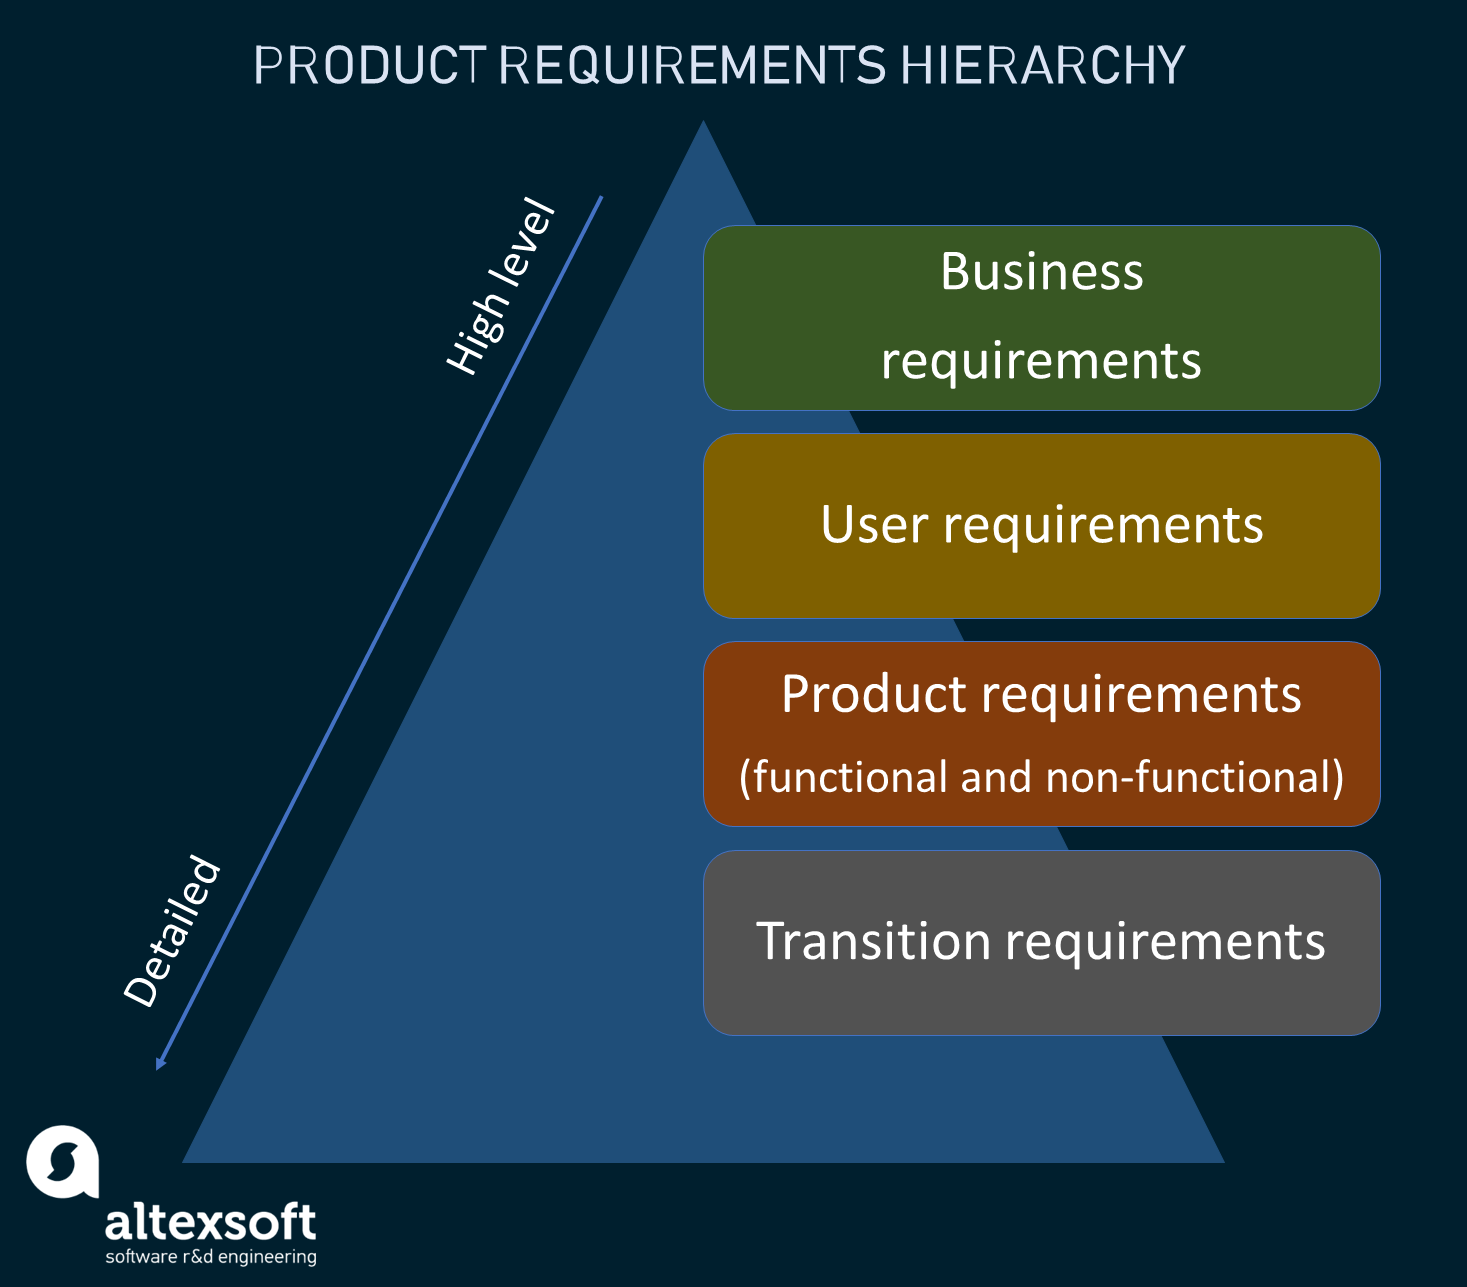 Product requirements classification schema